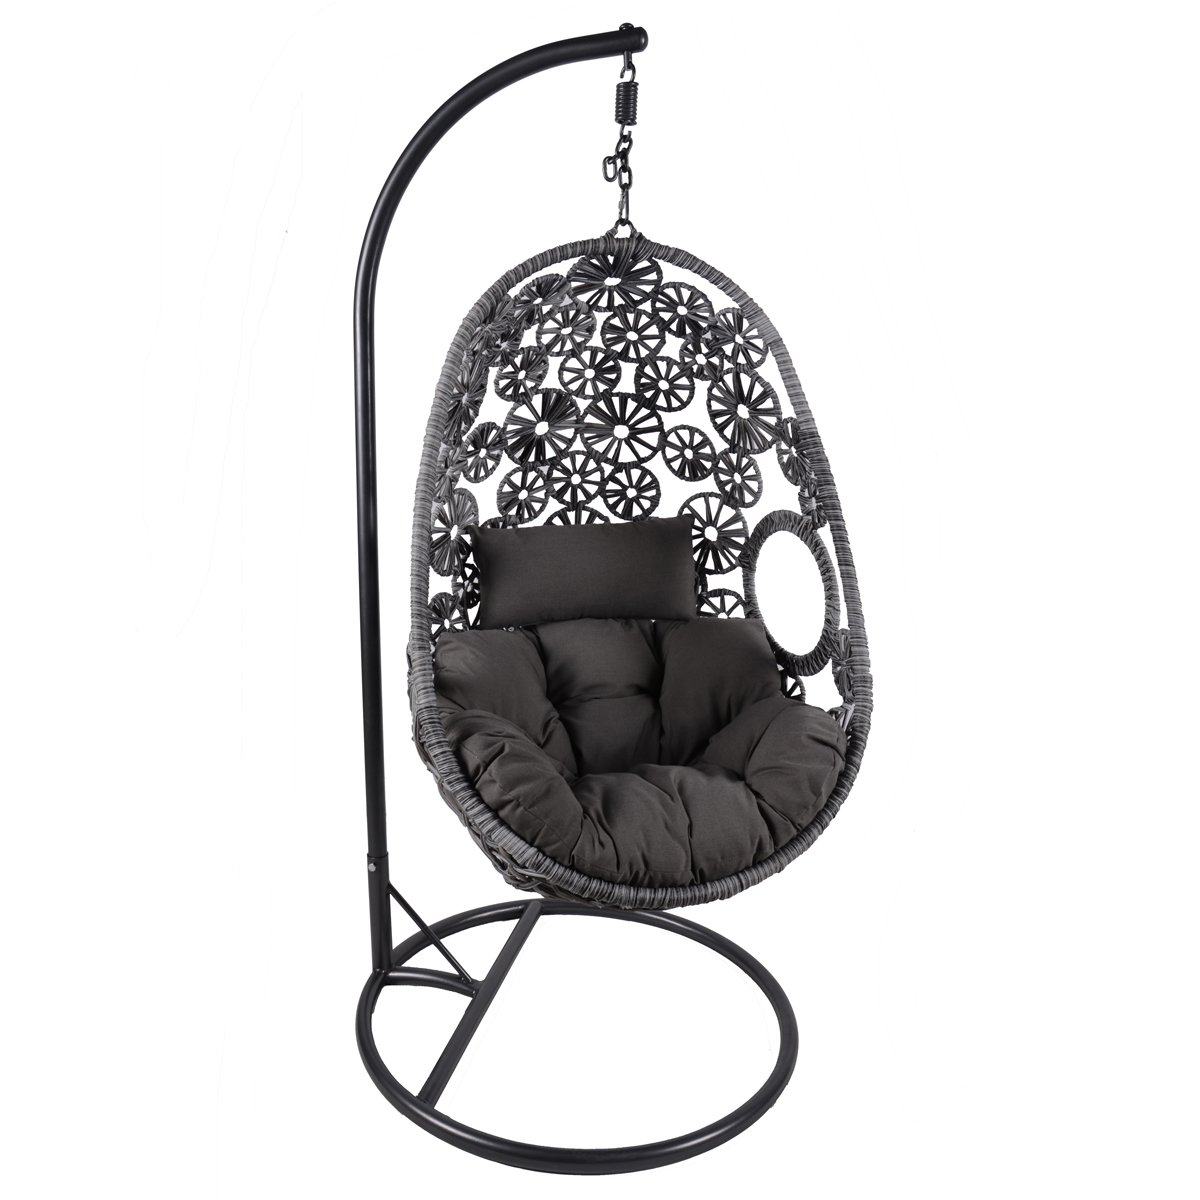 Miraculous Top 10 Finest Hanging Egg Chairs 2019 Astonshedsuk Ncnpc Chair Design For Home Ncnpcorg